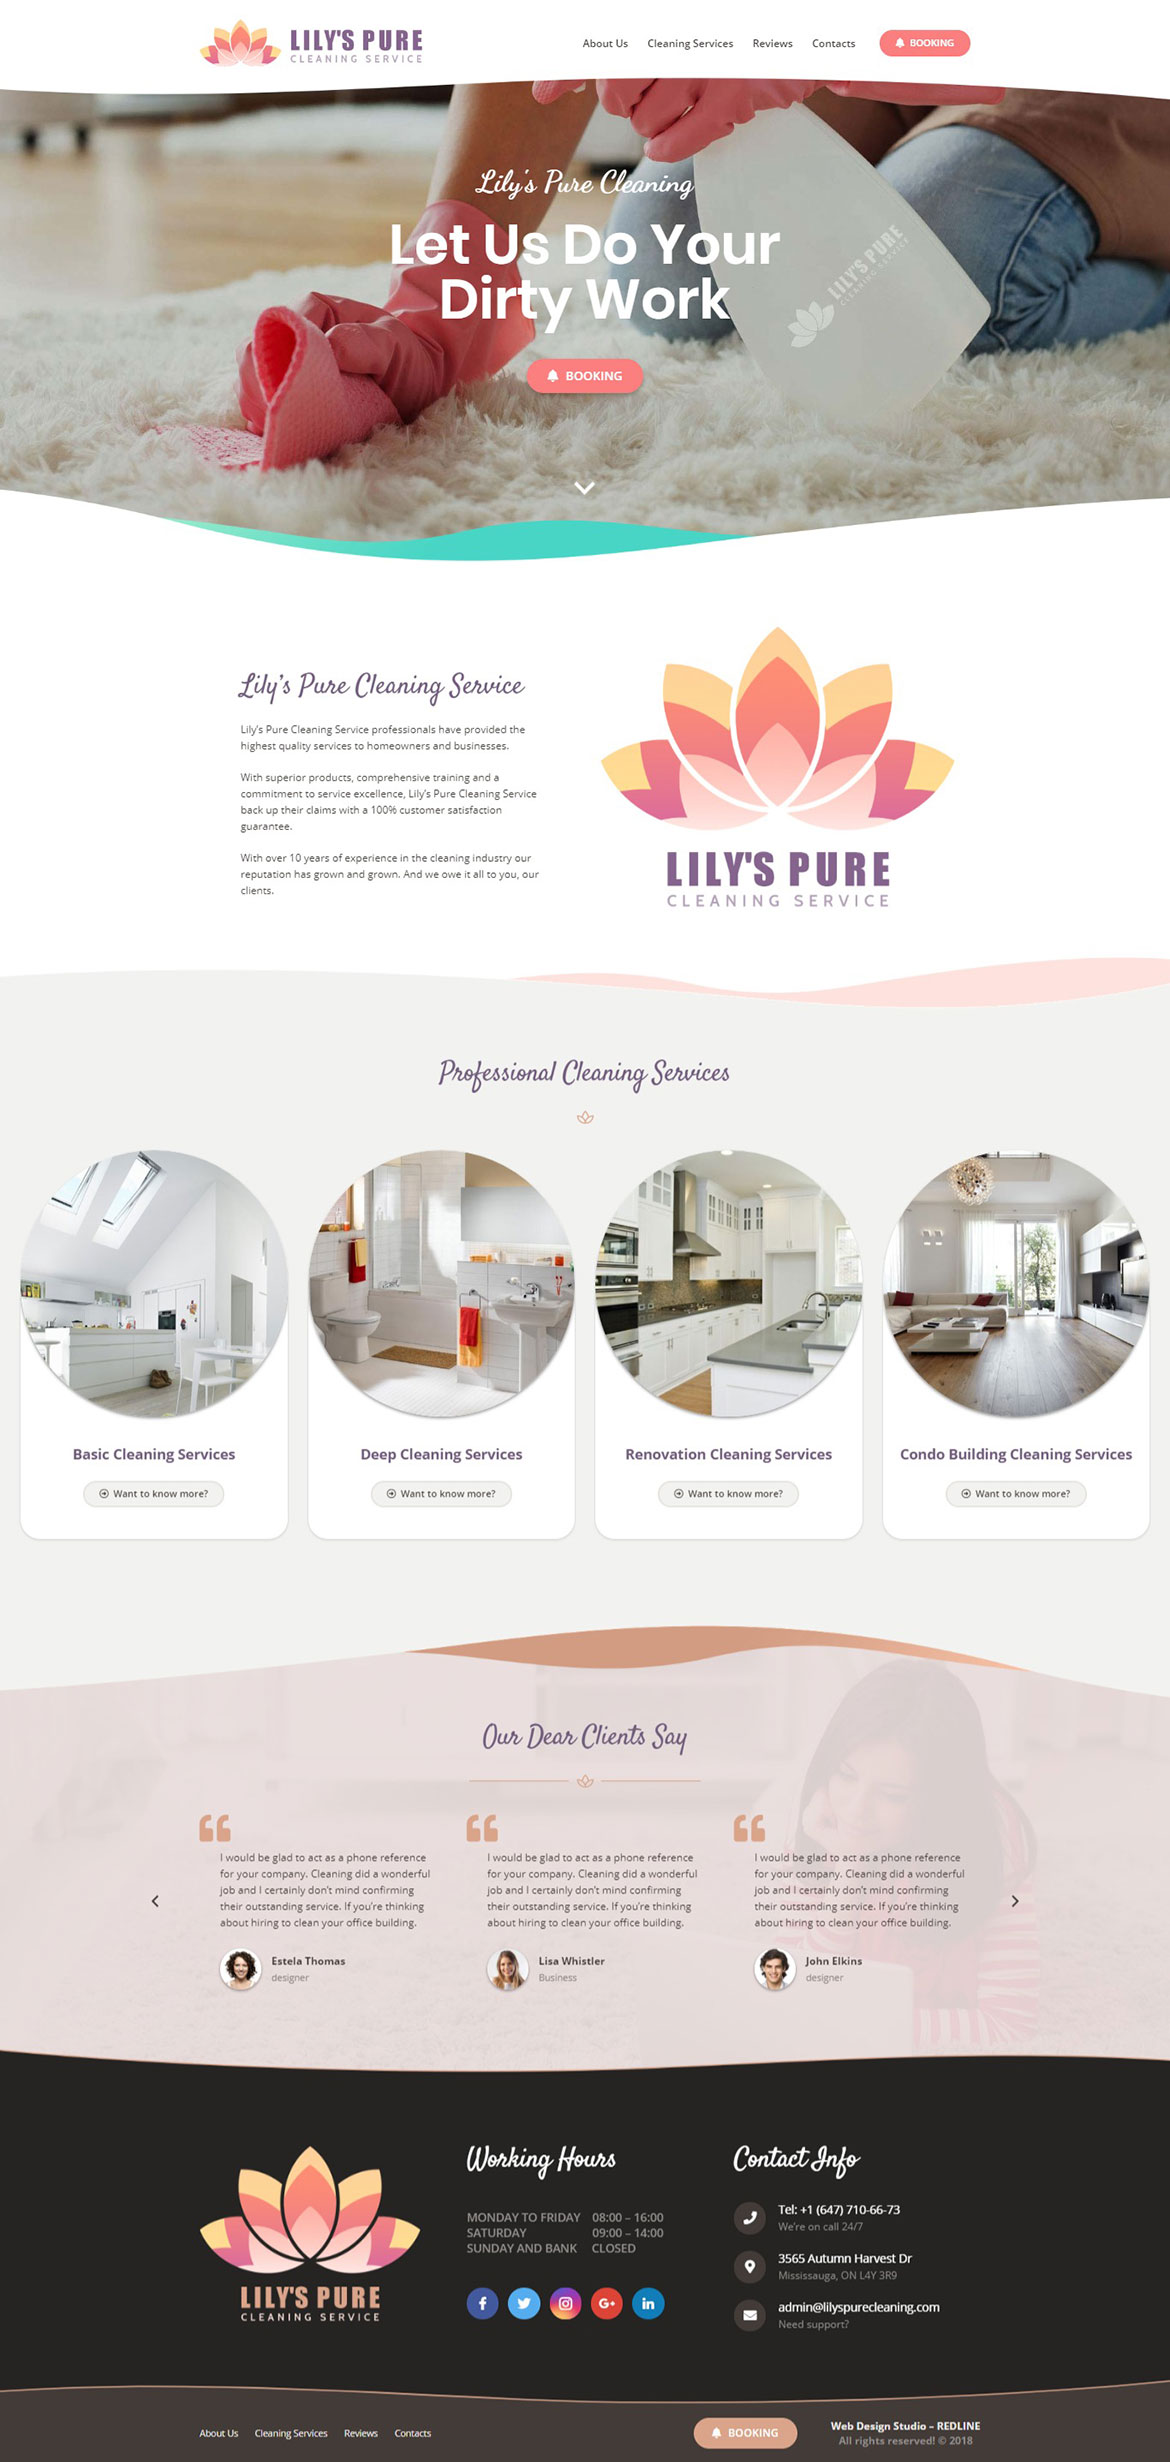 Lilys Pure Cleaning Service